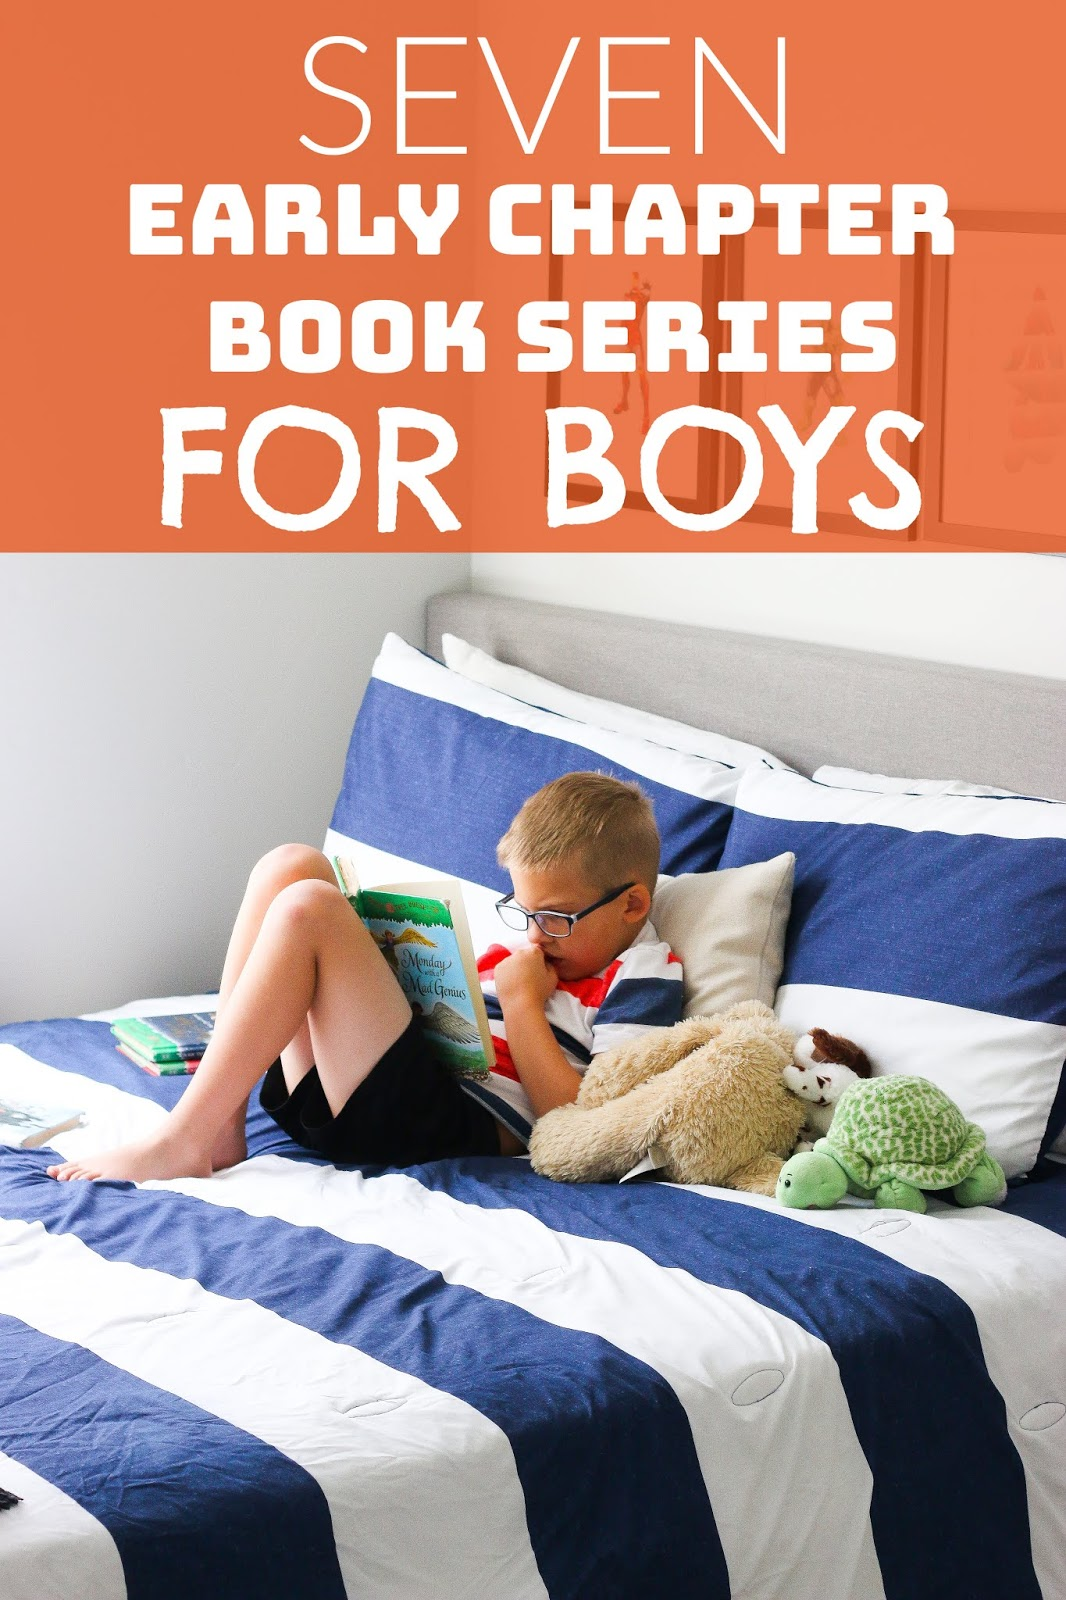 chapter books for 1st grade boy. Best early chapter books 2020. Beginning chapter books kindergarten. Classic early chapter books. Best first chapter books to read aloud. Illustrated chapter books. Chapter books for 1st graders to read on their own. Chapter books for 2nd grade boy #books #kidslit #kidsbooks #childrensliterature